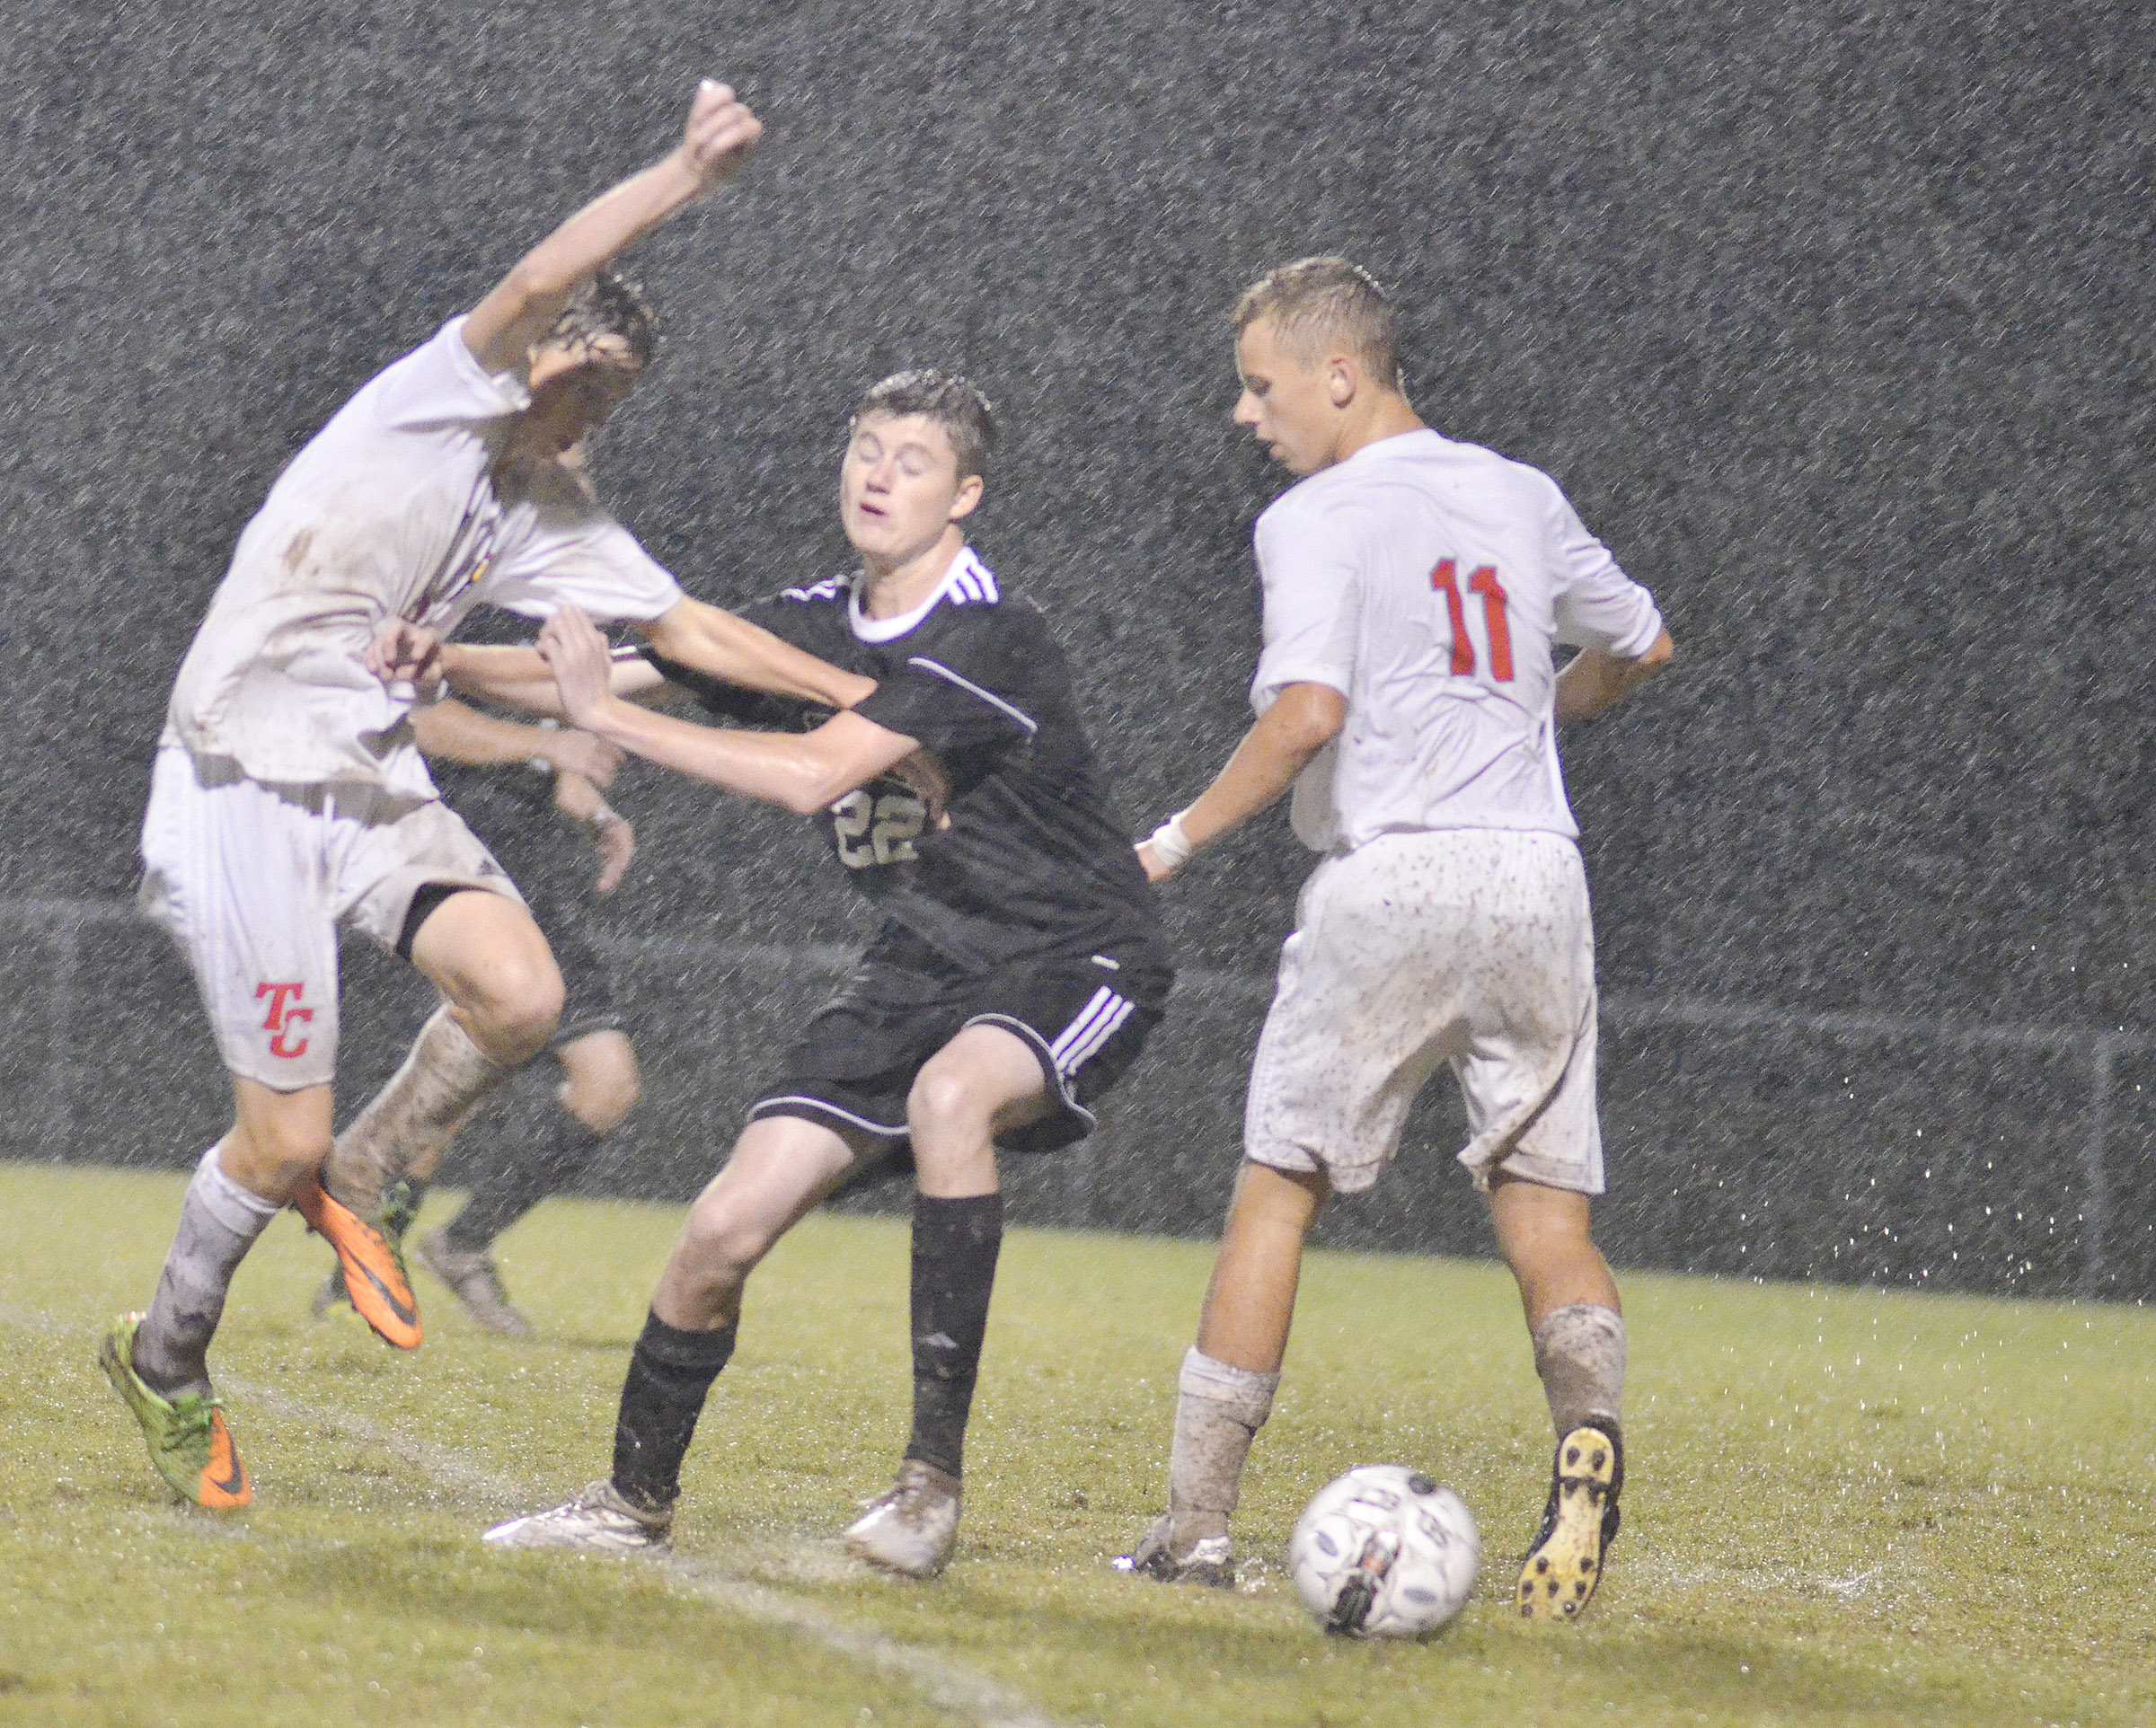 CHS freshman Tristin Faulkner fights for the ball.